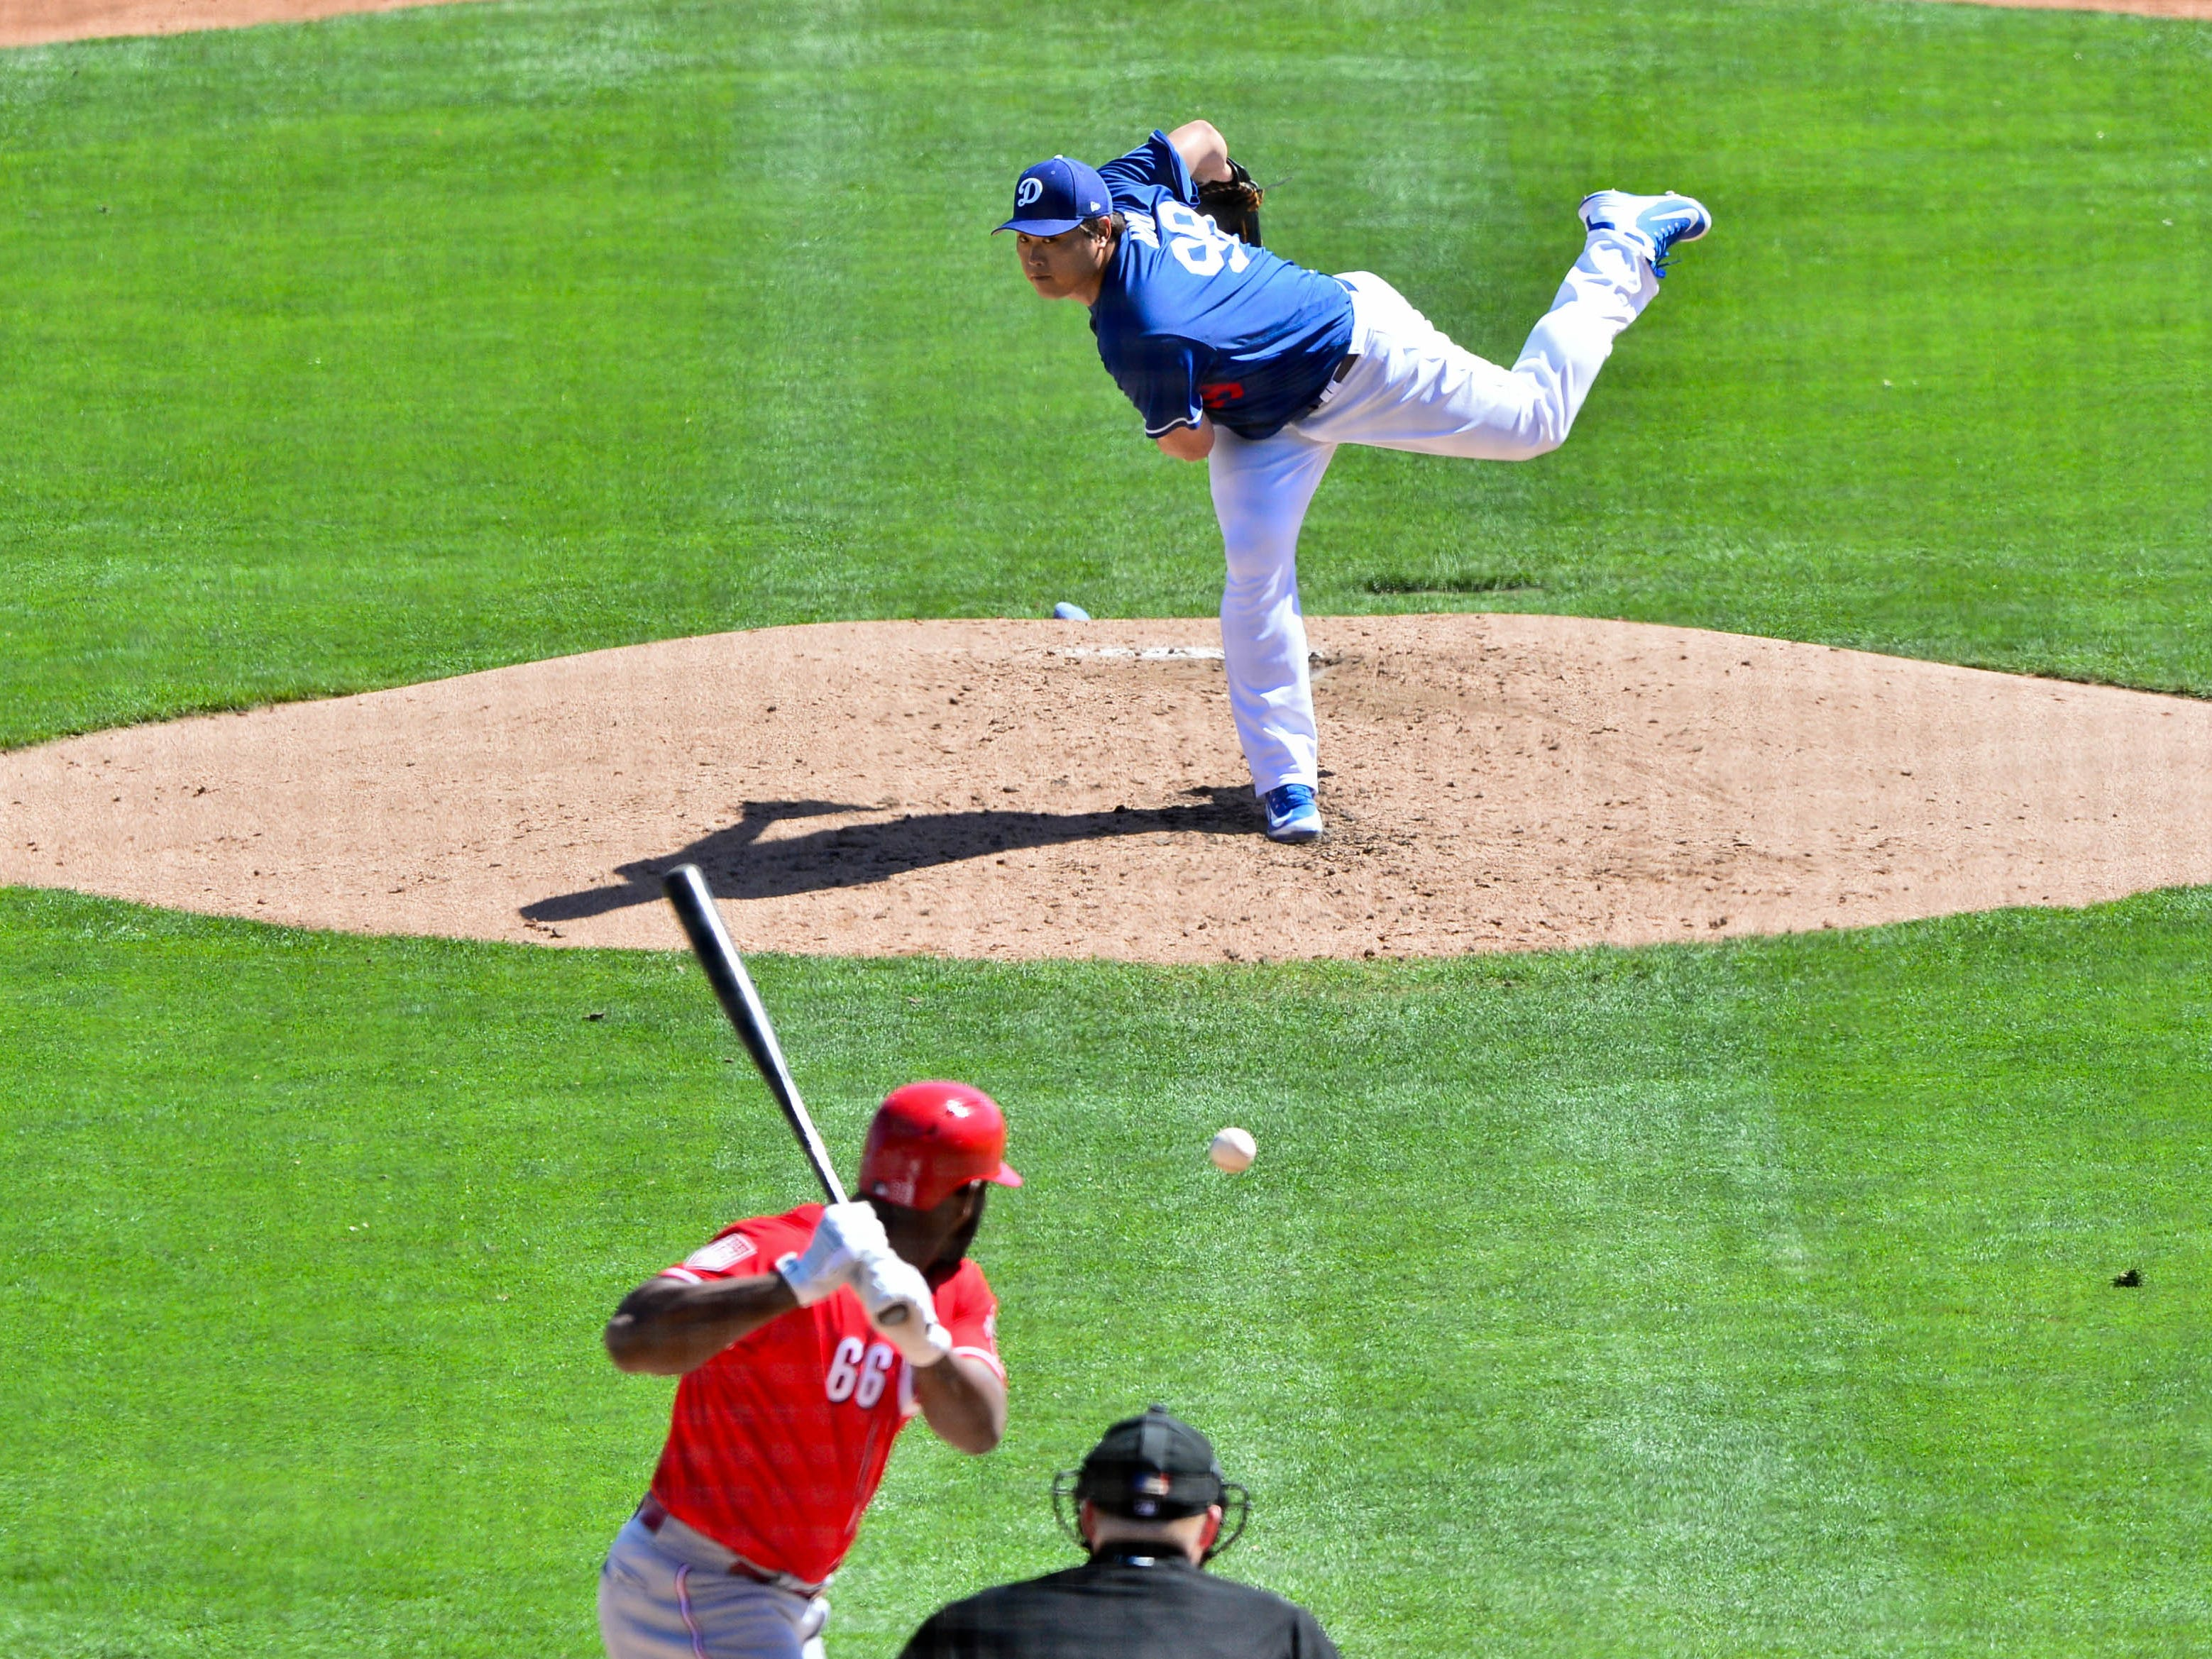 March 14: Los Angeles Dodgers starting pitcher Hyun-Jin Ryu throws to the Cincinnati Reds' Yasiel Puig during the third inning at Camelback Ranch.